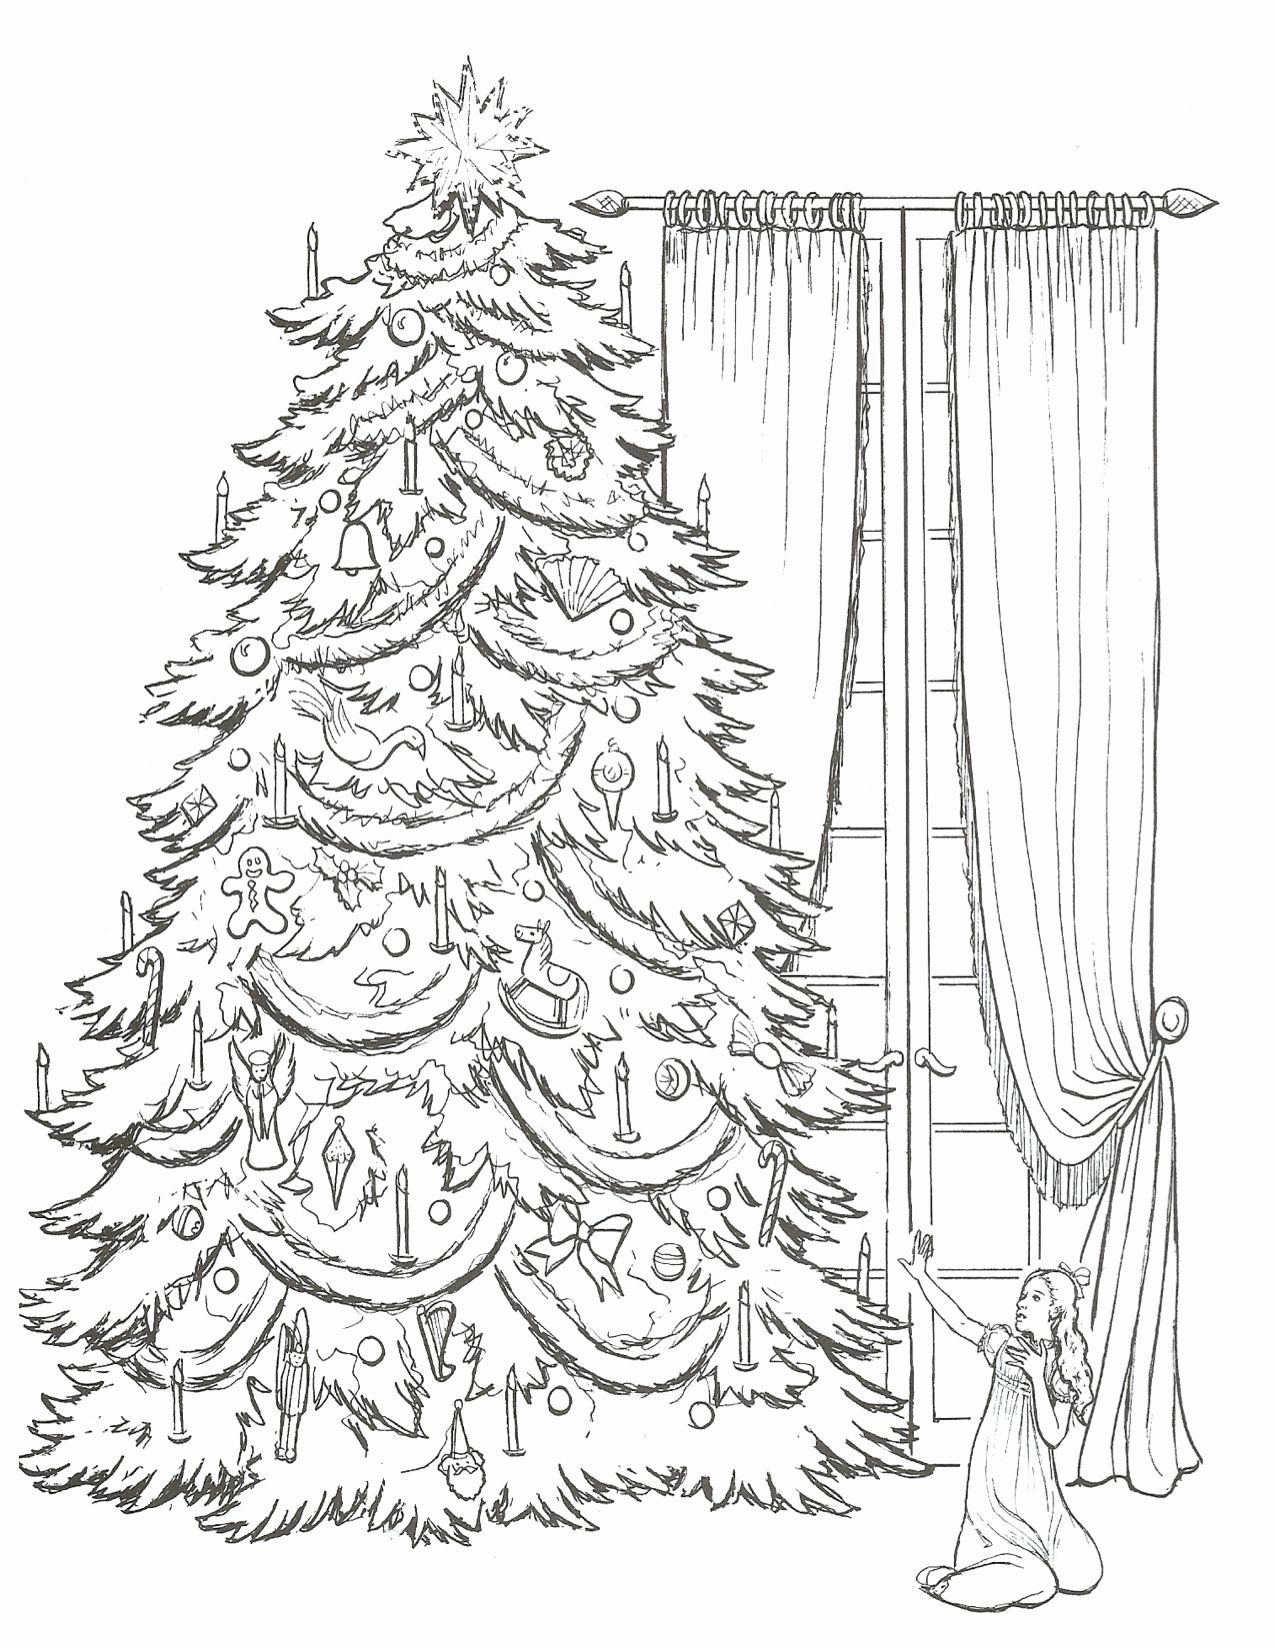 Coloring Book Evergreen Tree Unique Pin By Angga Ga On Wall Art Coloring Pages Dance Coloring Pages Coloring Books